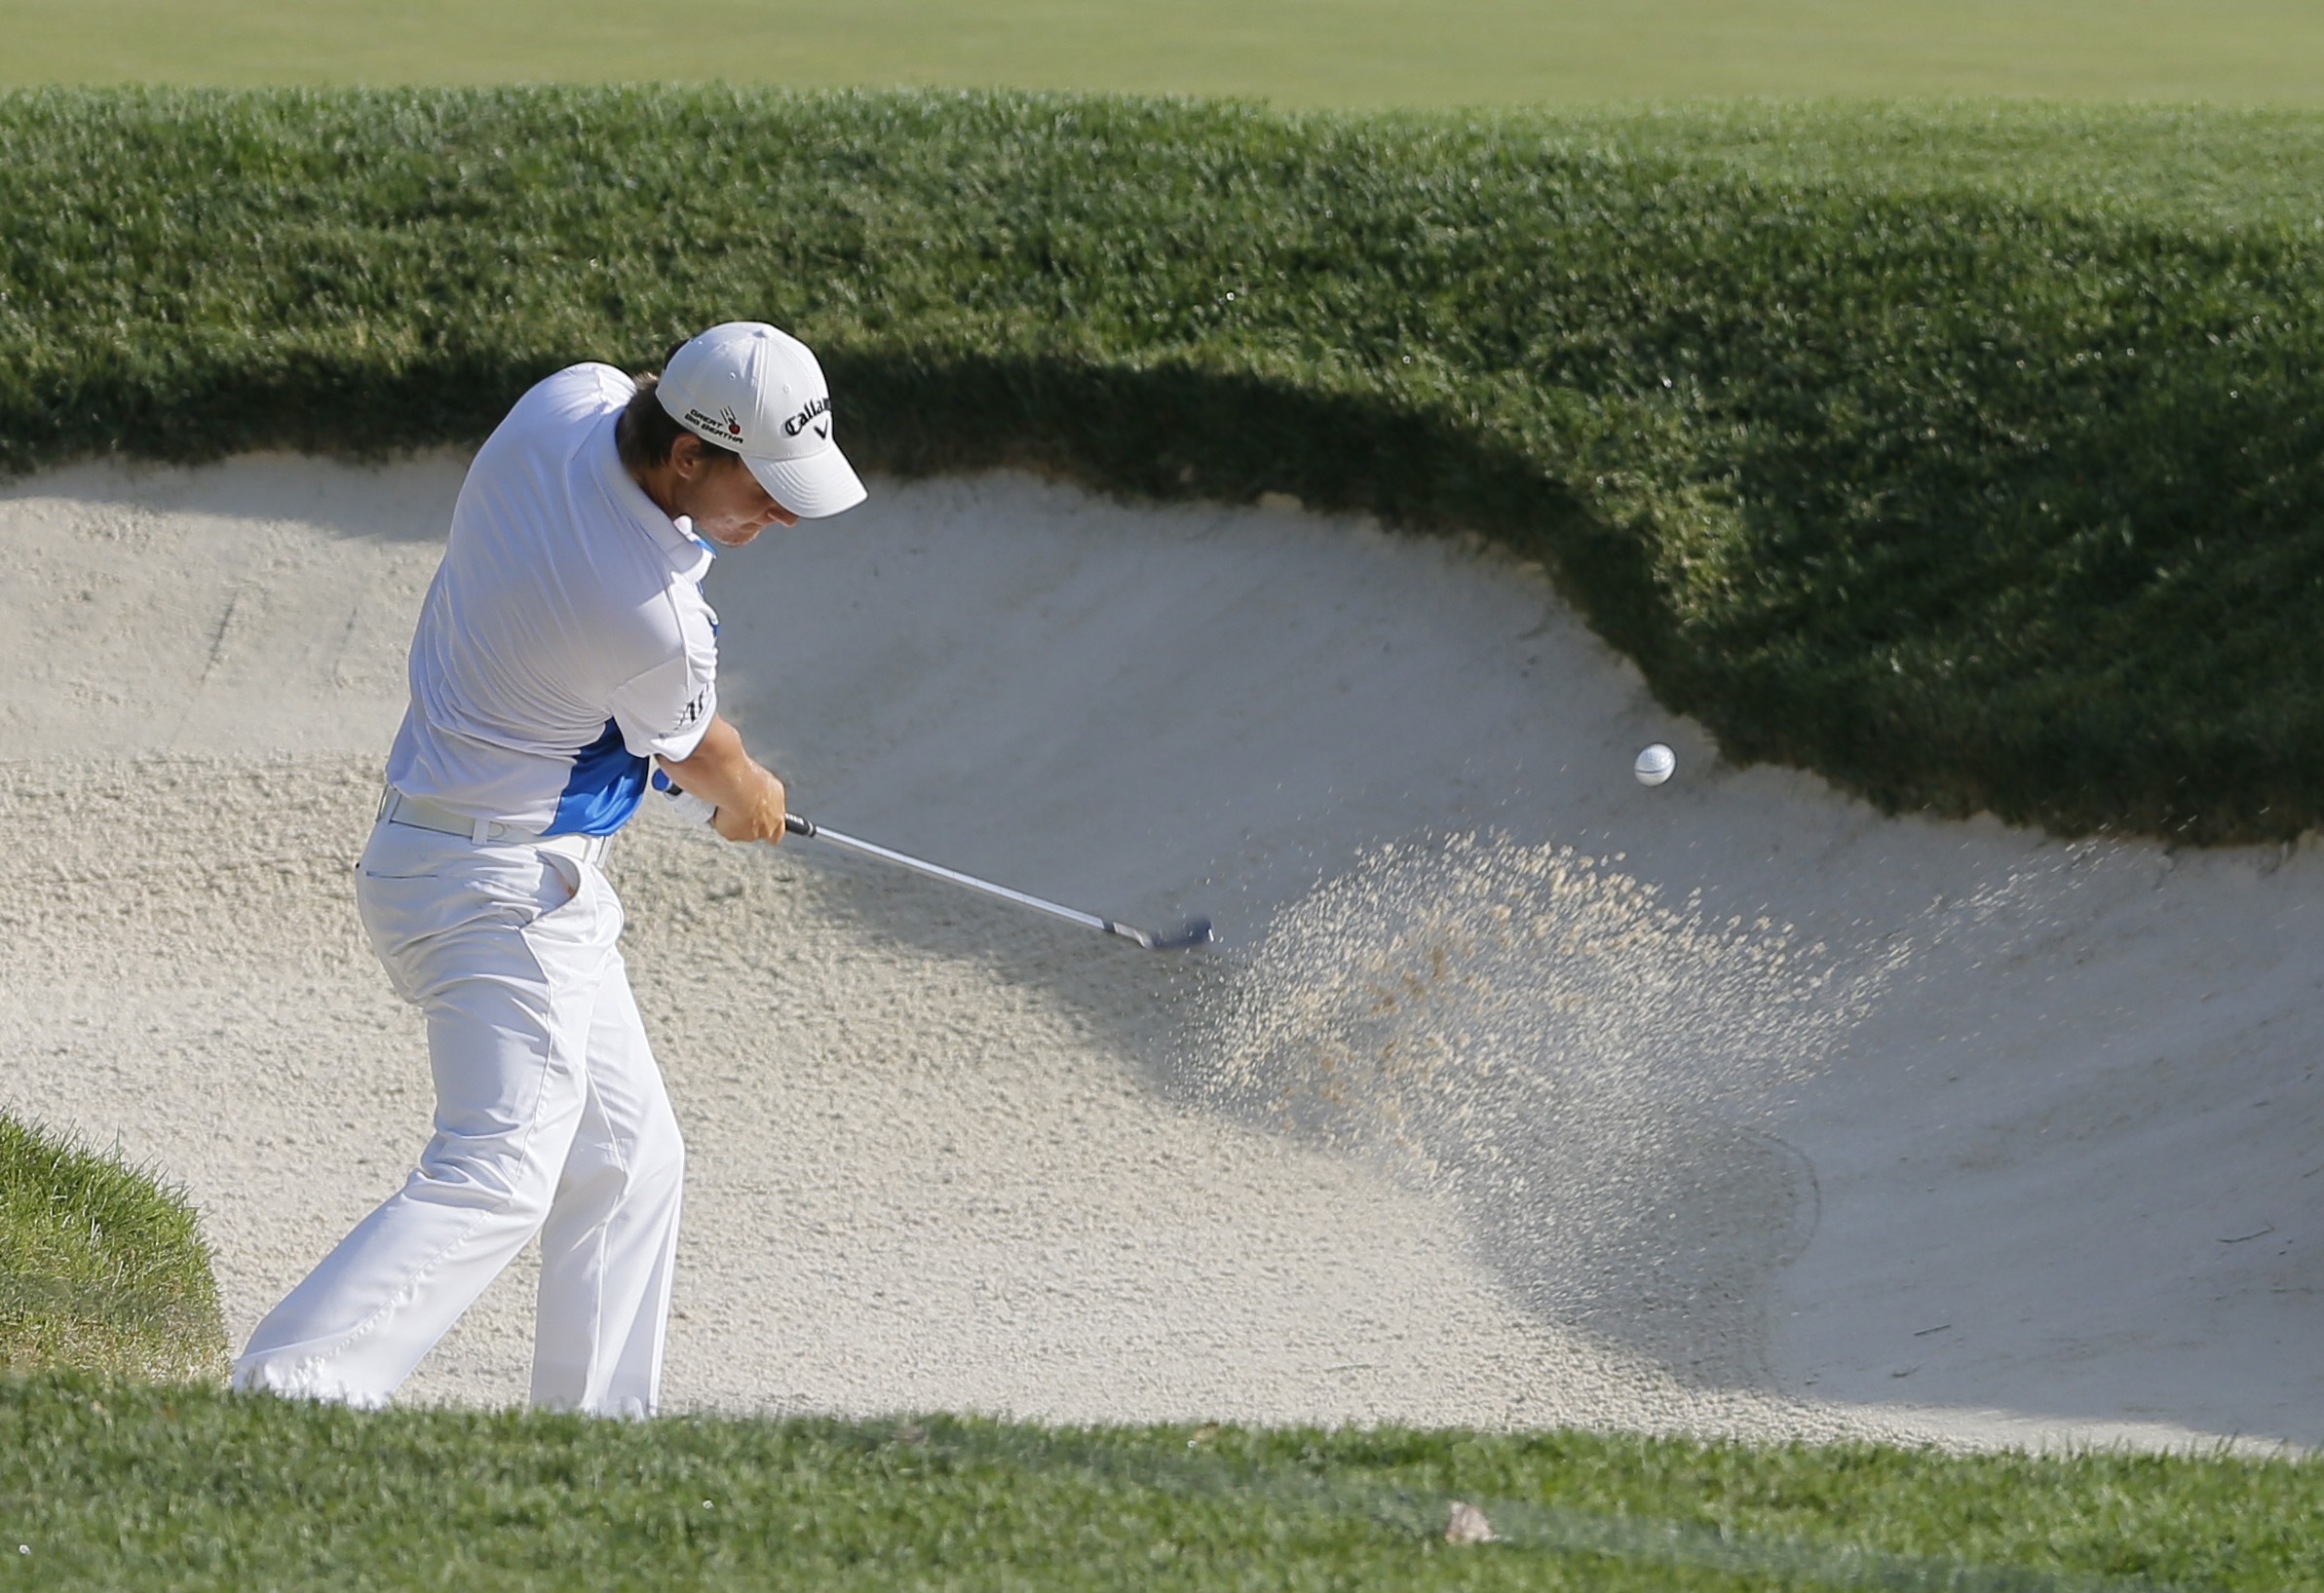 Emiliano Grillo, of Argentina, hits from a sand trap on the third hole during the first round of the PGA Championship golf tournament at Baltusrol Golf Club in Springfield, N.J., Thursday, July 28, 2016. (AP Photo/Tony Gutierrez)